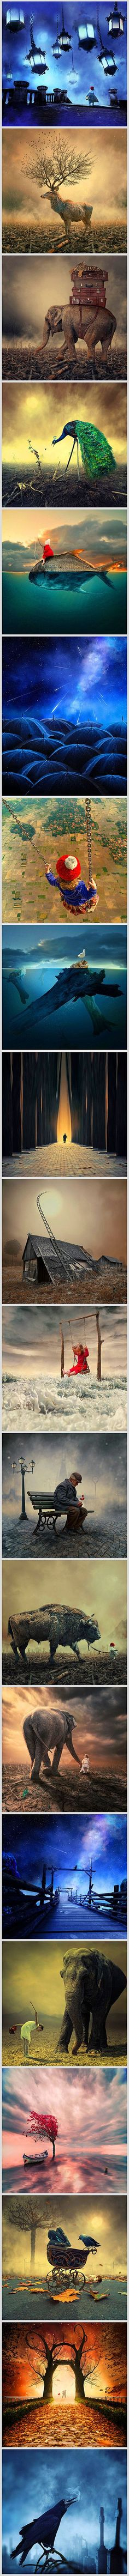 20 Mind-Bending Photo Manipulations That Blend Fantasy with Reality